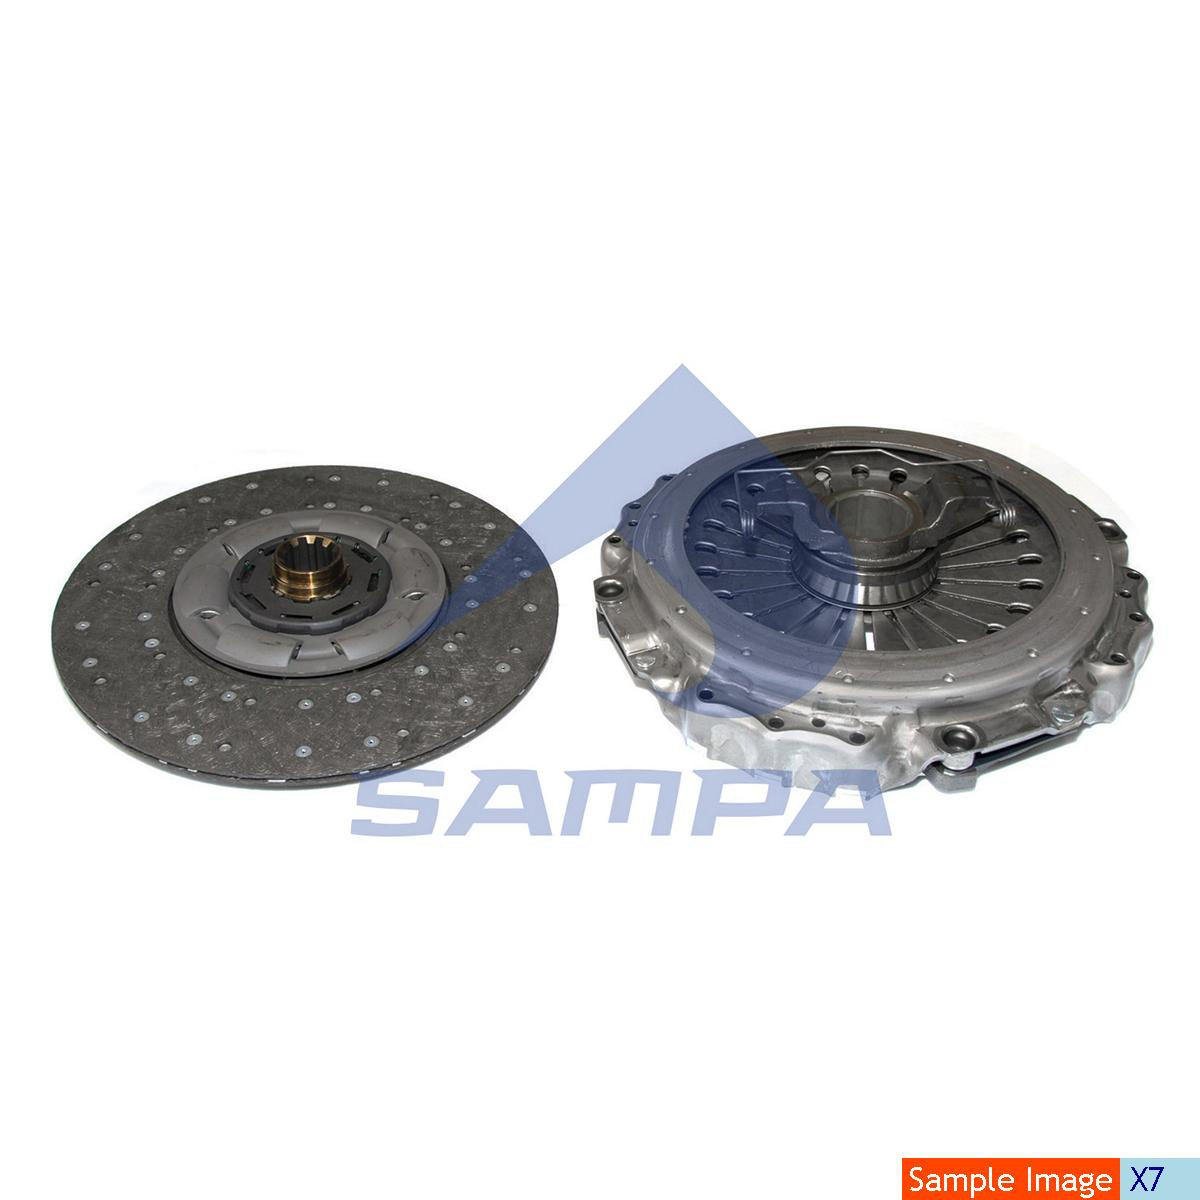 Repair Kit, Clutch, Volvo, Clutch